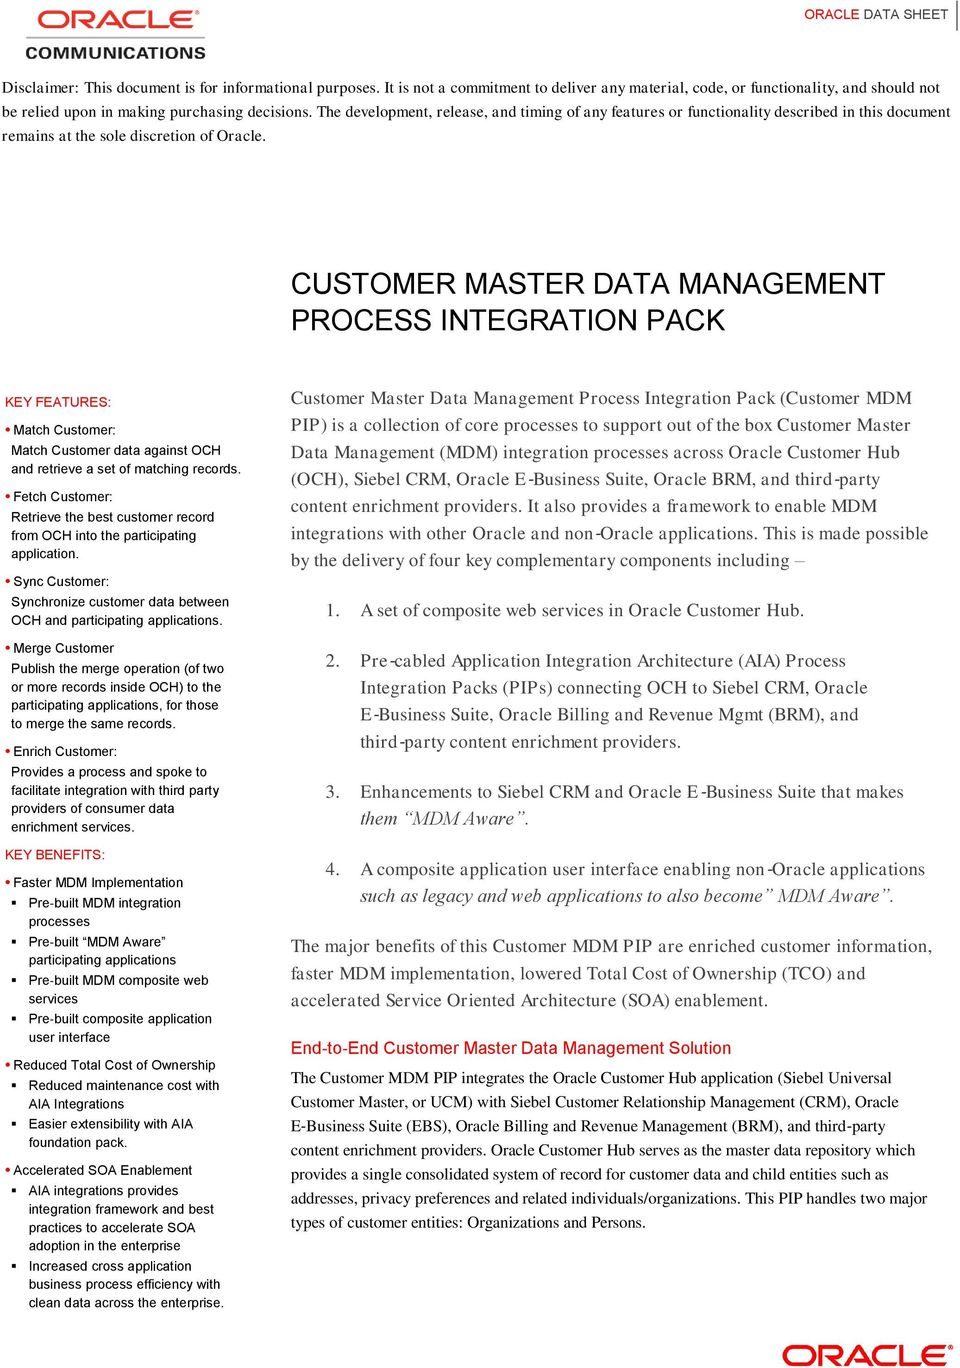 CUSTOMER MASTER DATA MANAGEMENT PROCESS INTEGRATION PACK KEY FEATURES: Match Customer: Match Customer data against OCH and retrieve a set of matching records.